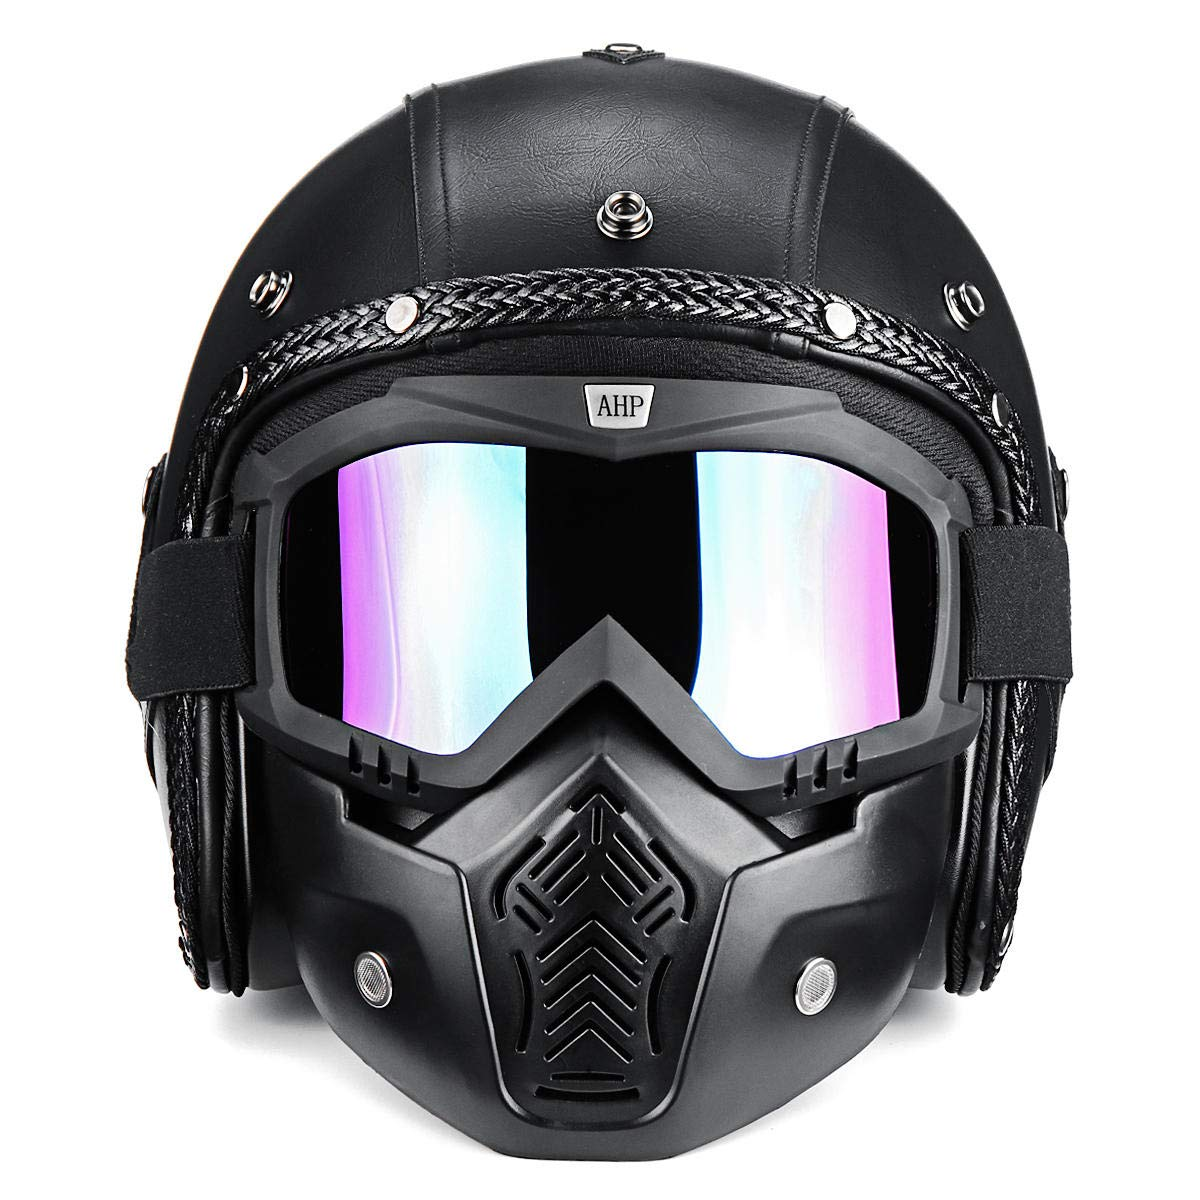 Leno 3/4 Open Chopper Motorcycle PU Leather Helmet+Face Mask with Glasses for Harley